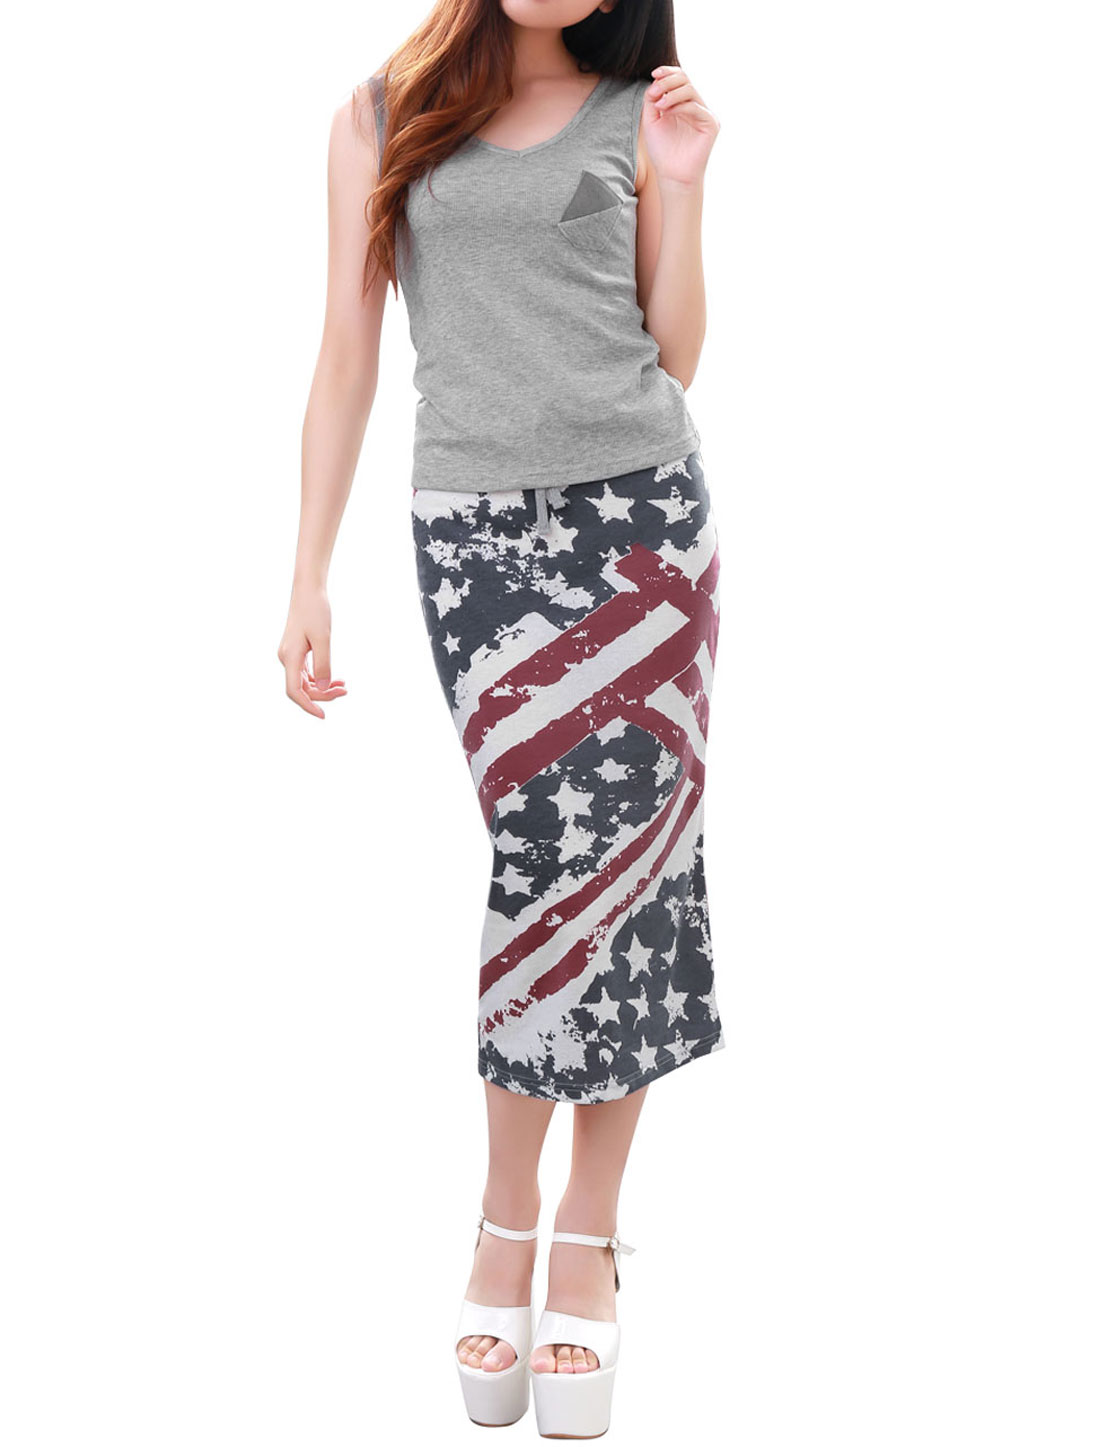 Women American Flag Prints Back Vent Multicolor Skirt w Sleeveless Light Gray Knit Top XS